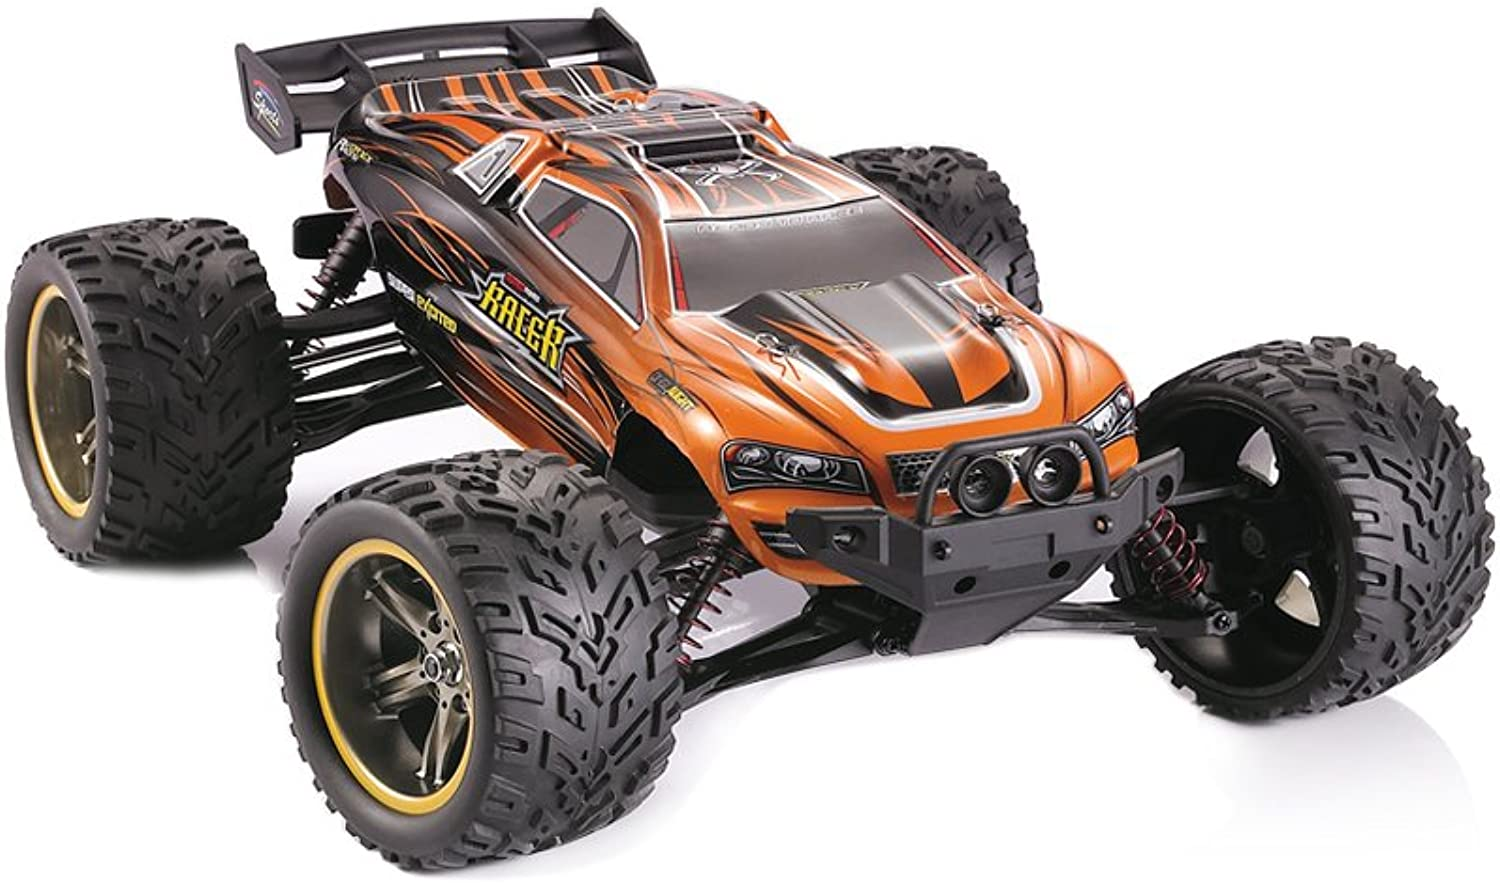 Generic New 1 12 45km h Gptoys S912 9116 2.4G 2WD RC Monster Truck Crawler Drift Controle Remoto Bigfoot Speed Waterproof and Shockproof Sweet orange